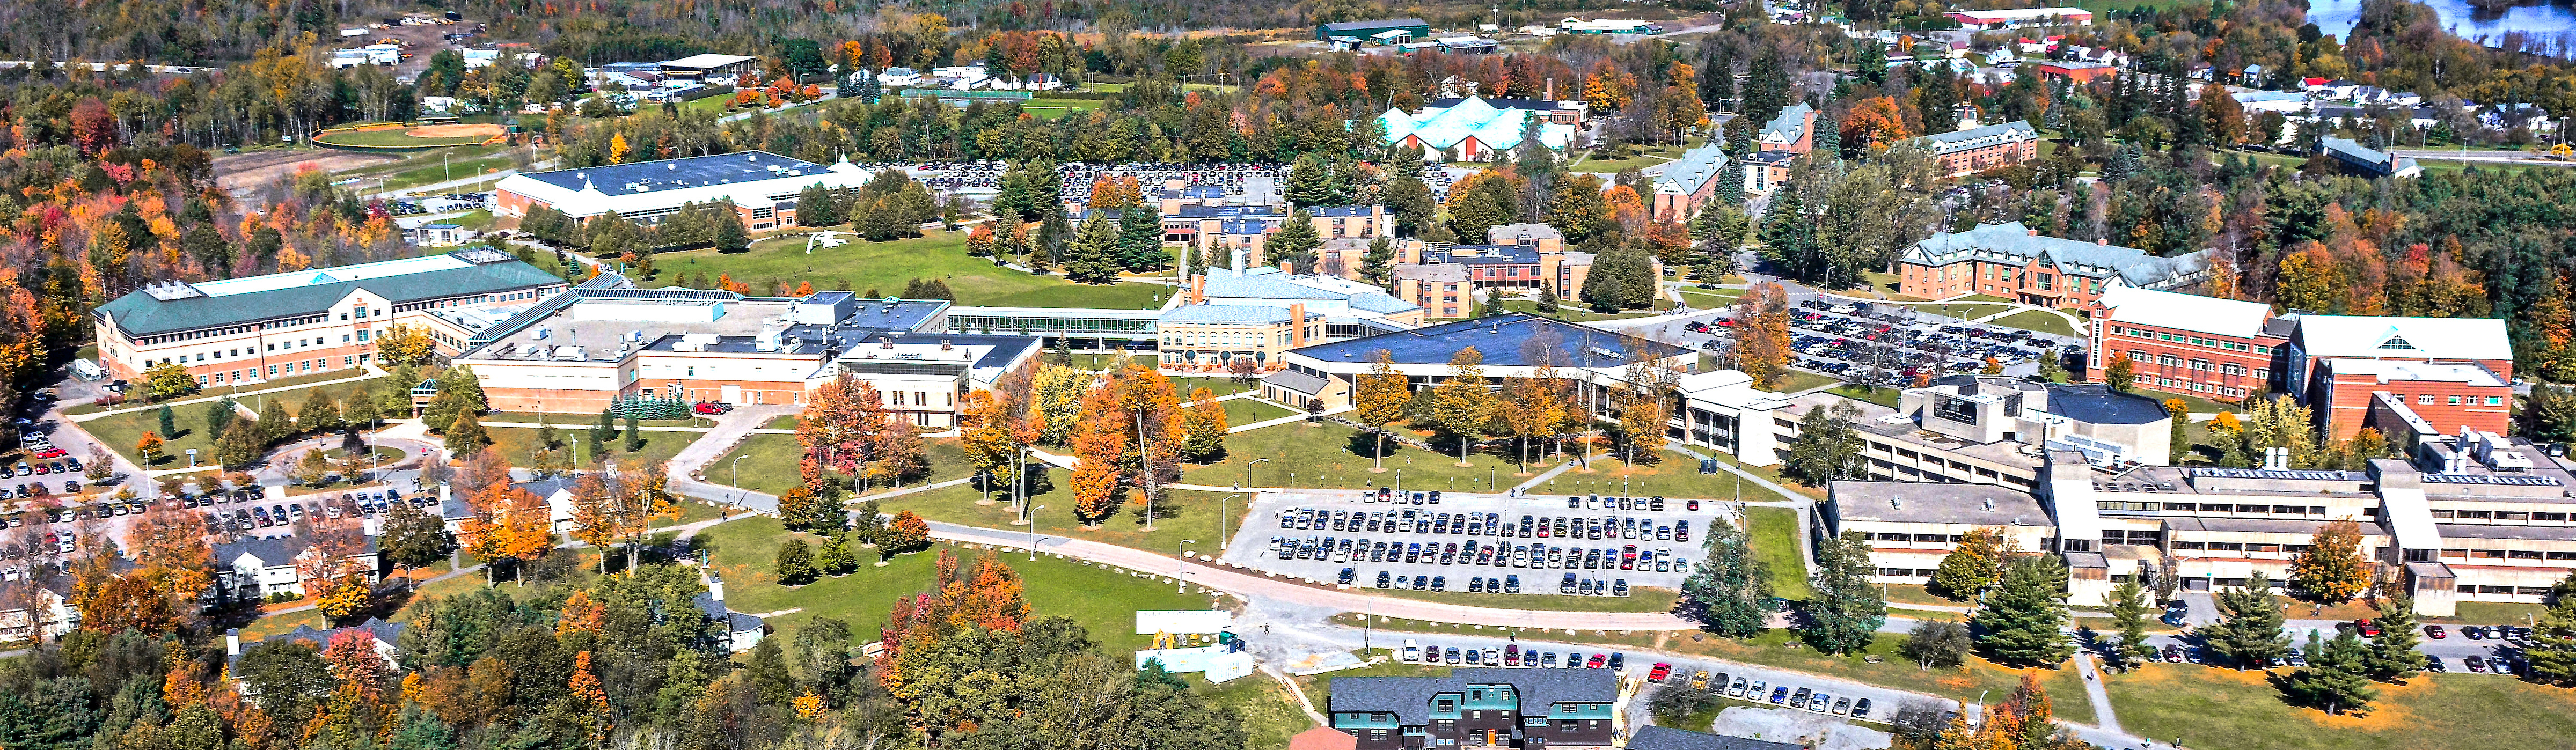 Clarkson University Scholarship Program